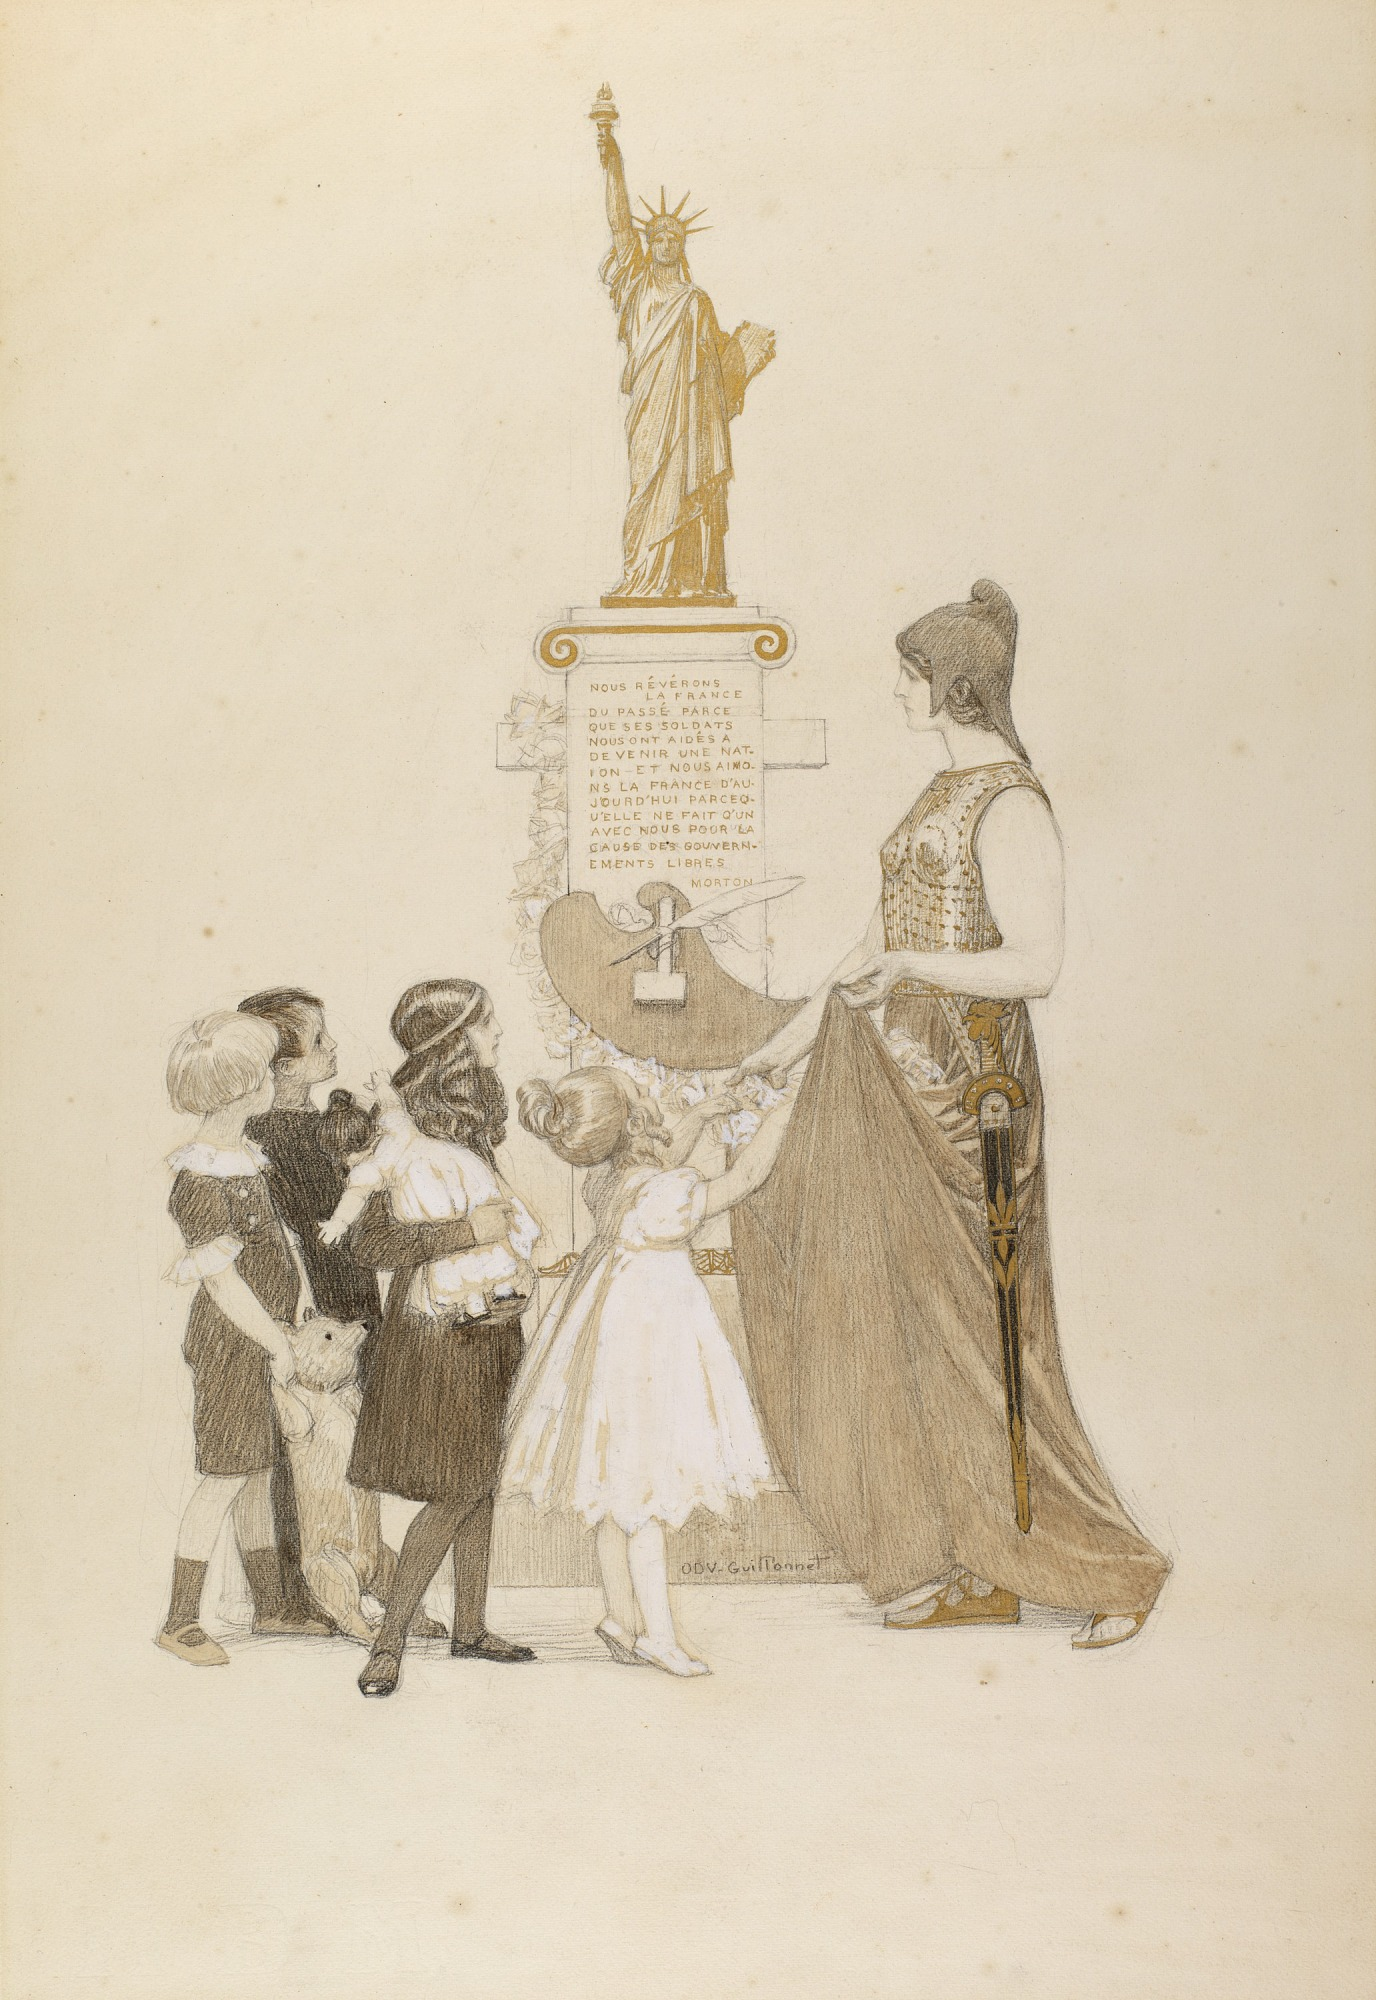 images for Offerings to the Goddess of Liberty